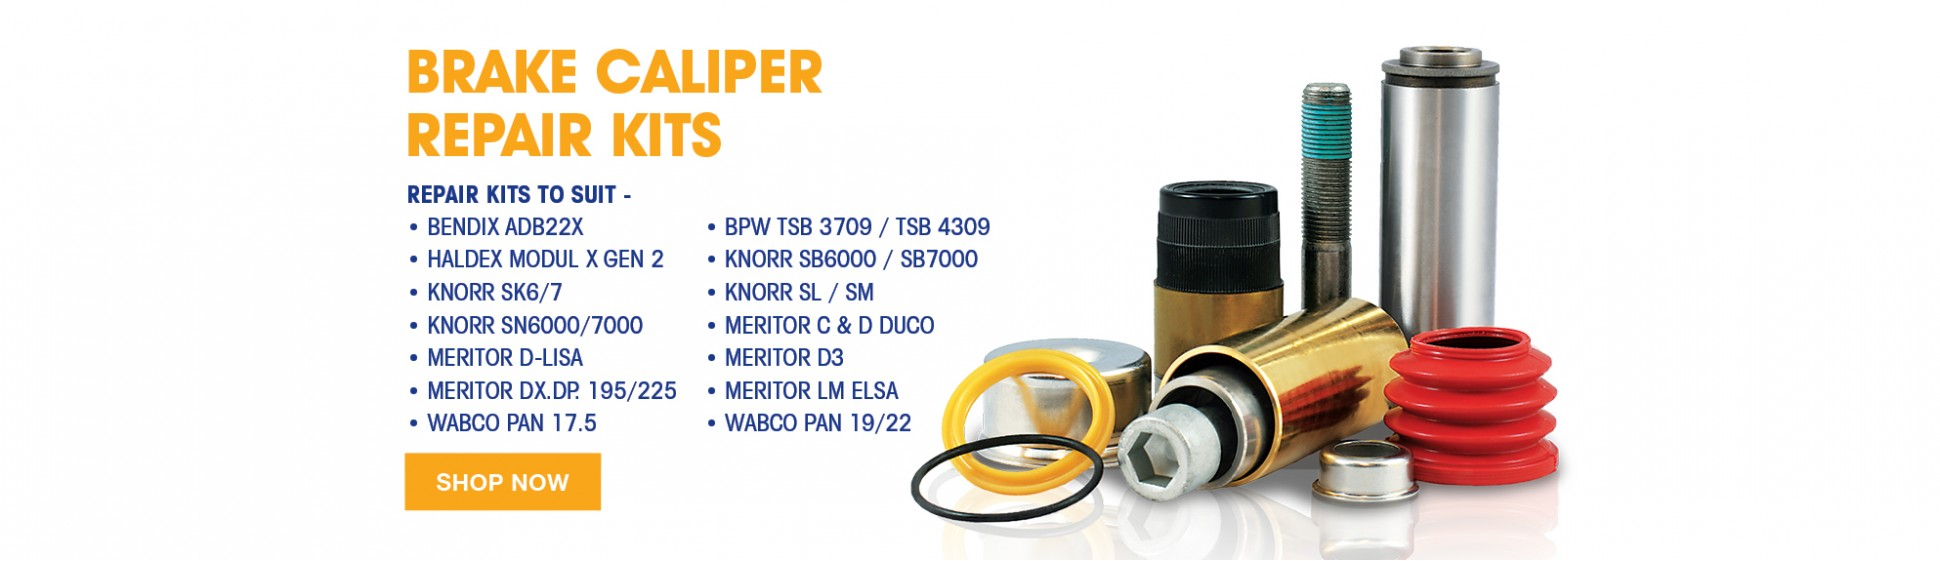 Truck Trailer Brake Caliper Repair Kits